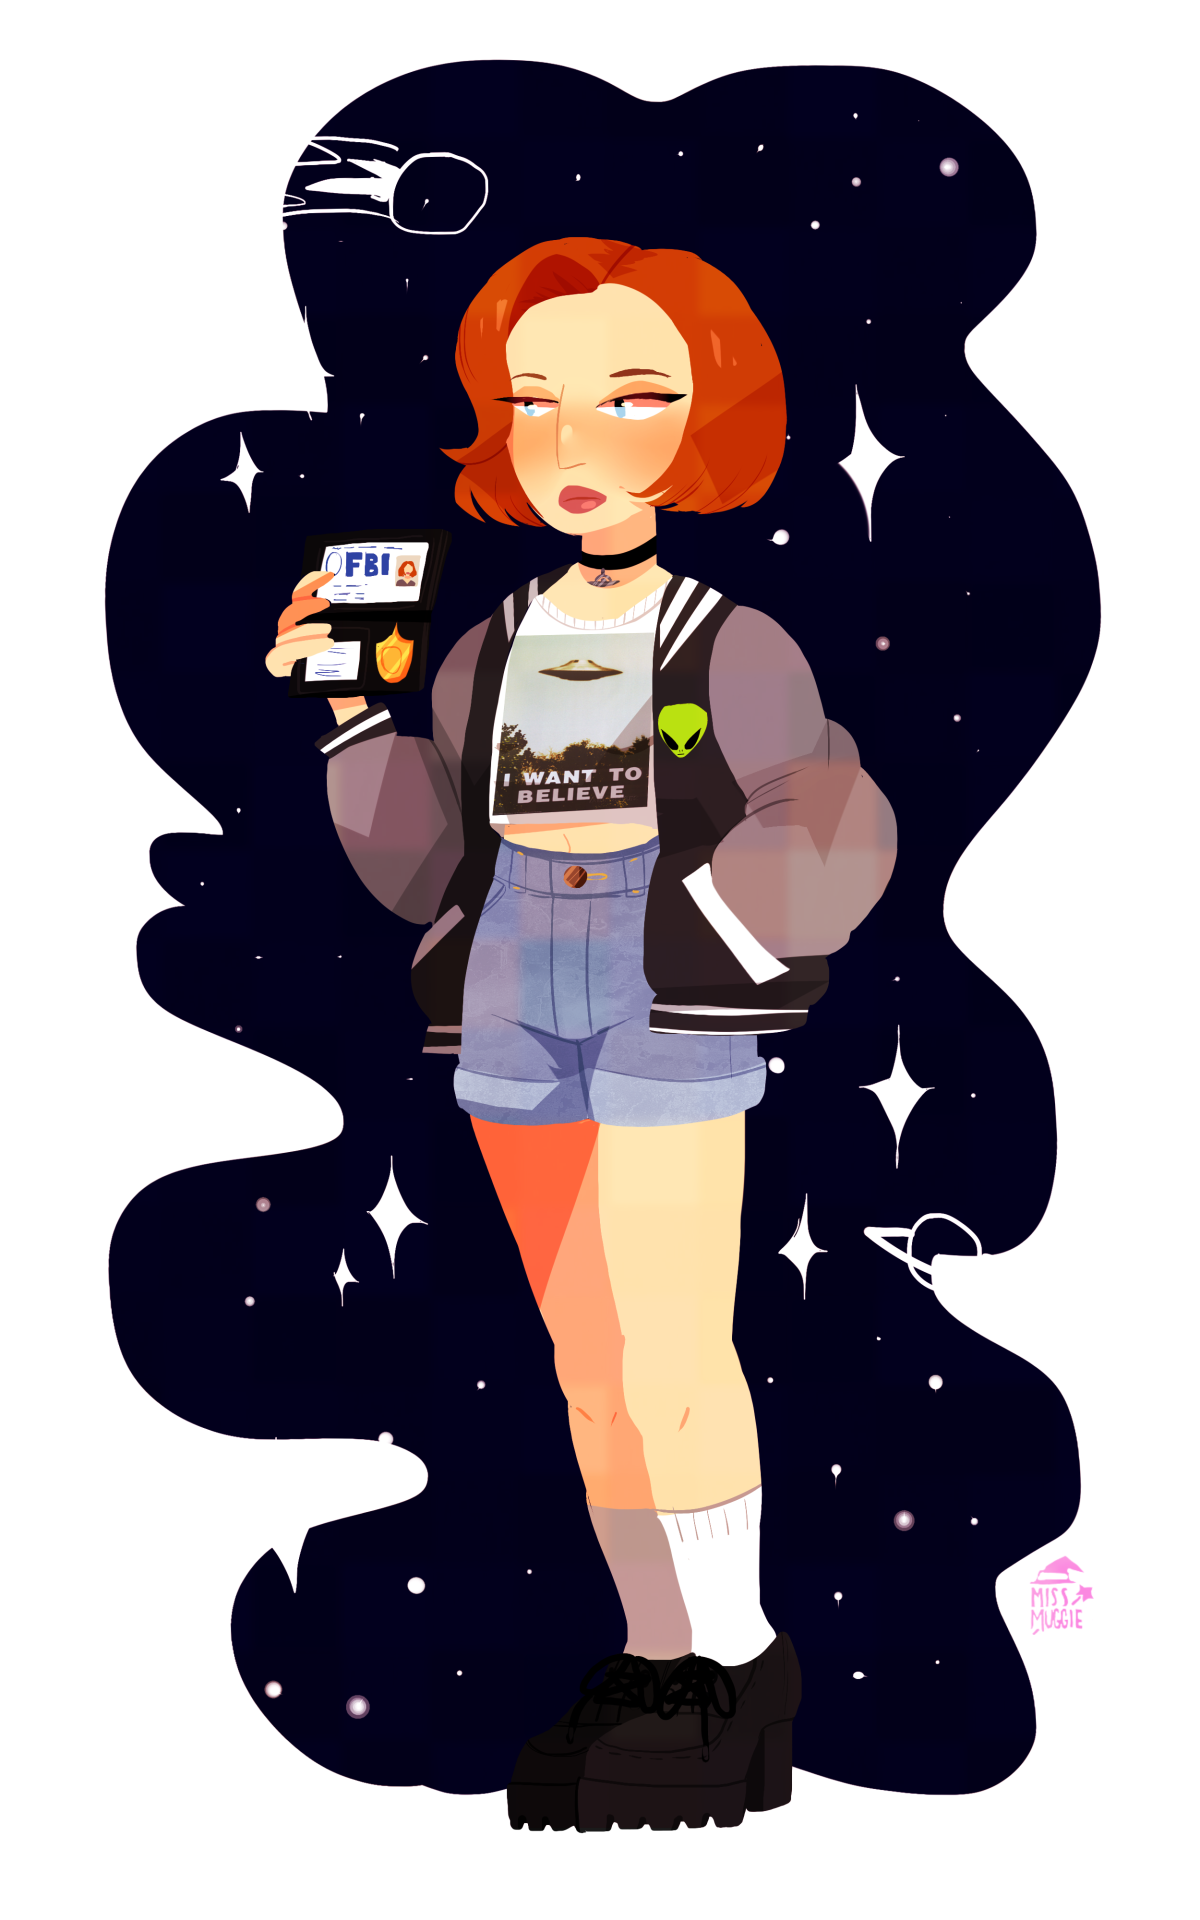 X files iphone wallpaper tumblr - Guess What I M Finally Watching Dana Scully Art From X Files